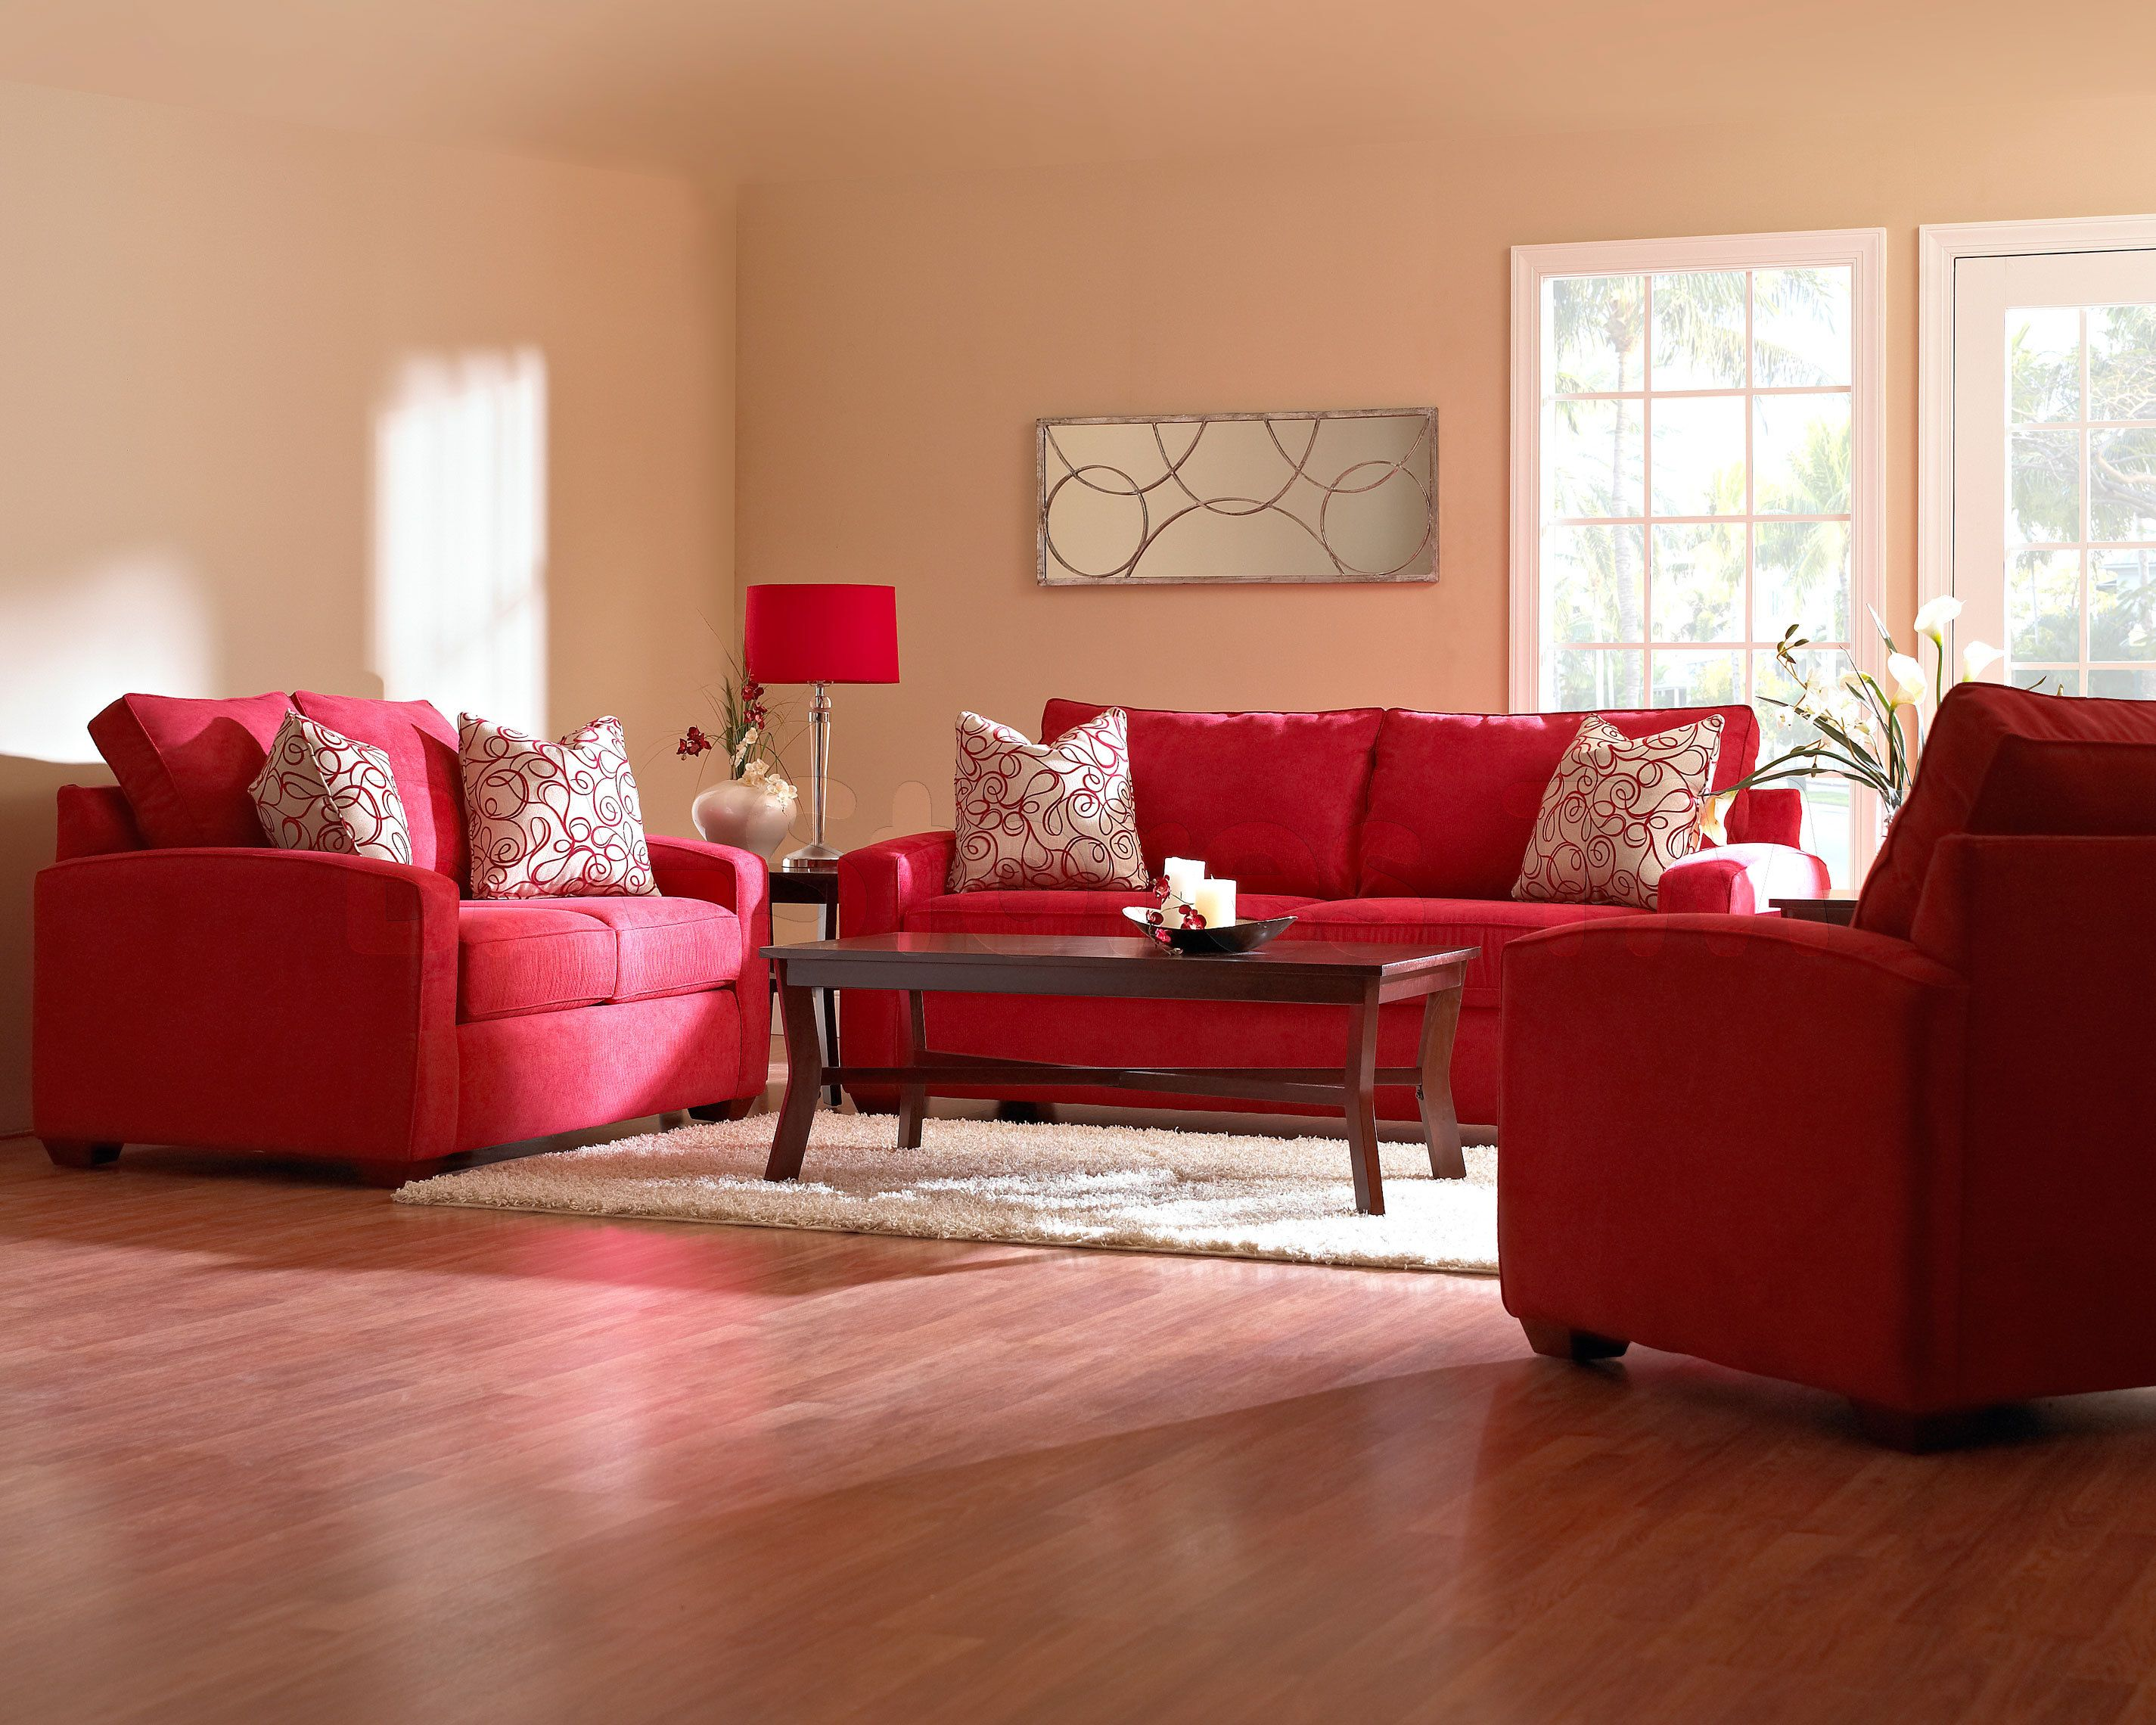 Red Couches In 2020 Red Sofa Living Room Red Sofa Living Red